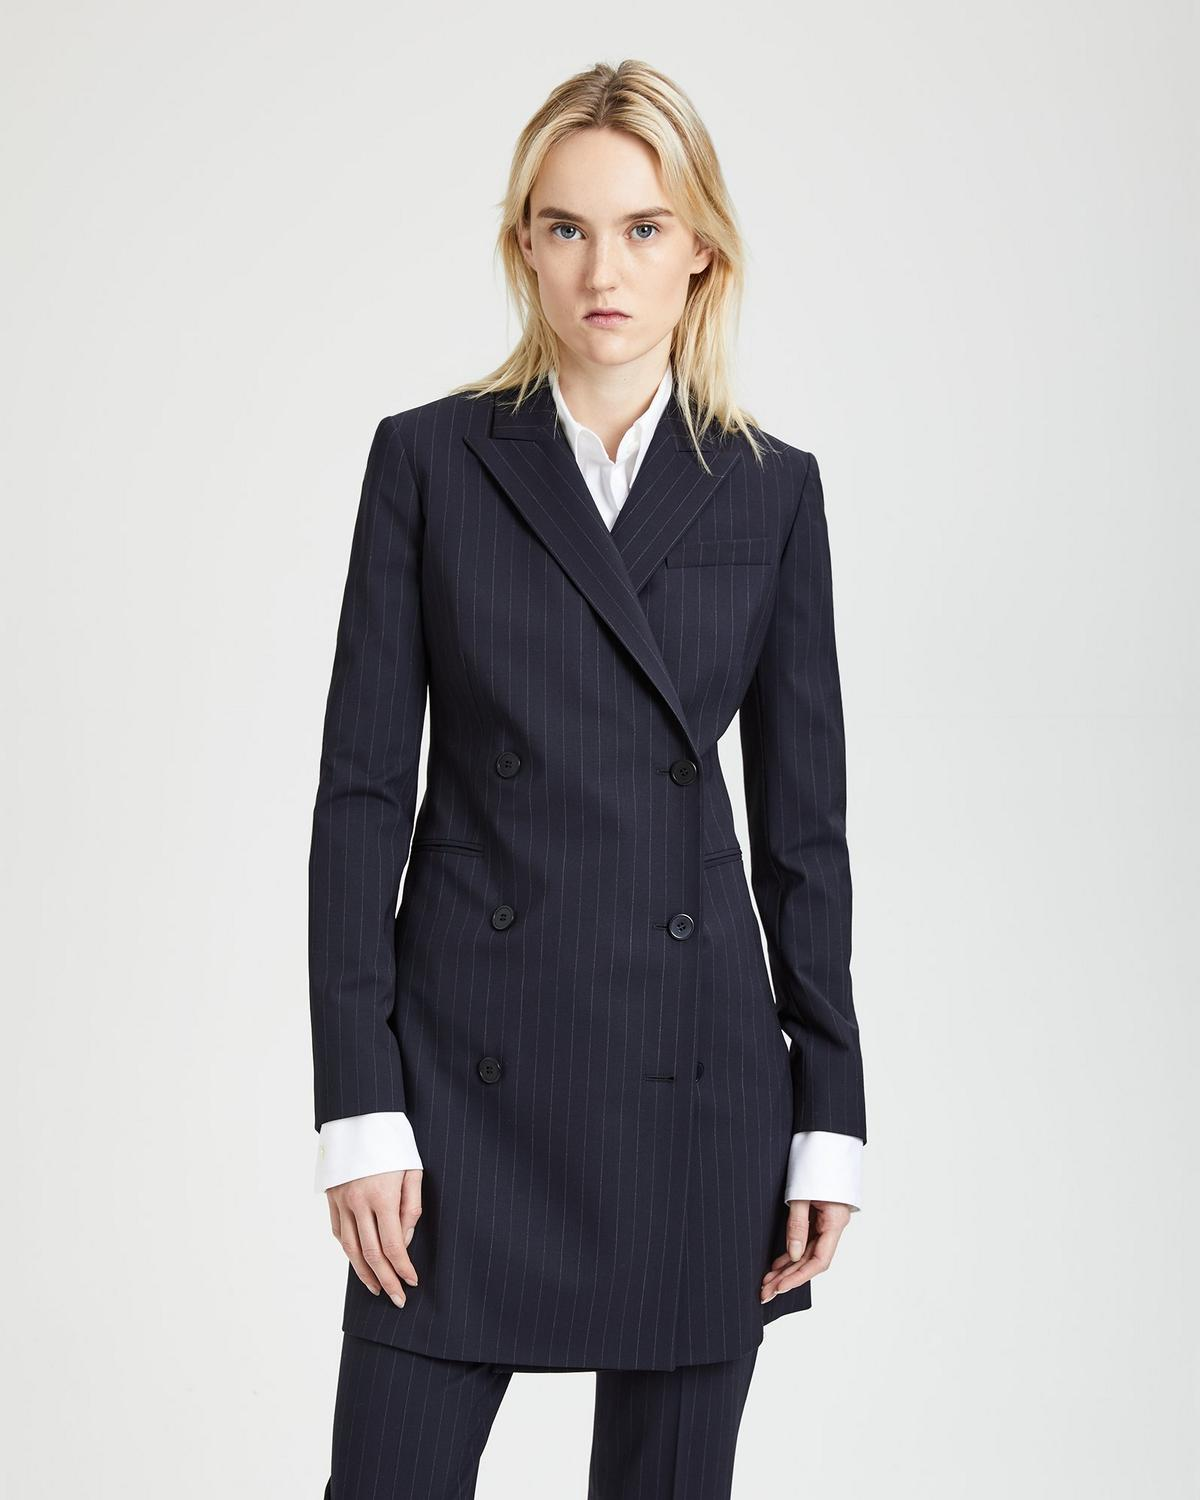 Good Wool Pinstripe Blazer Dress